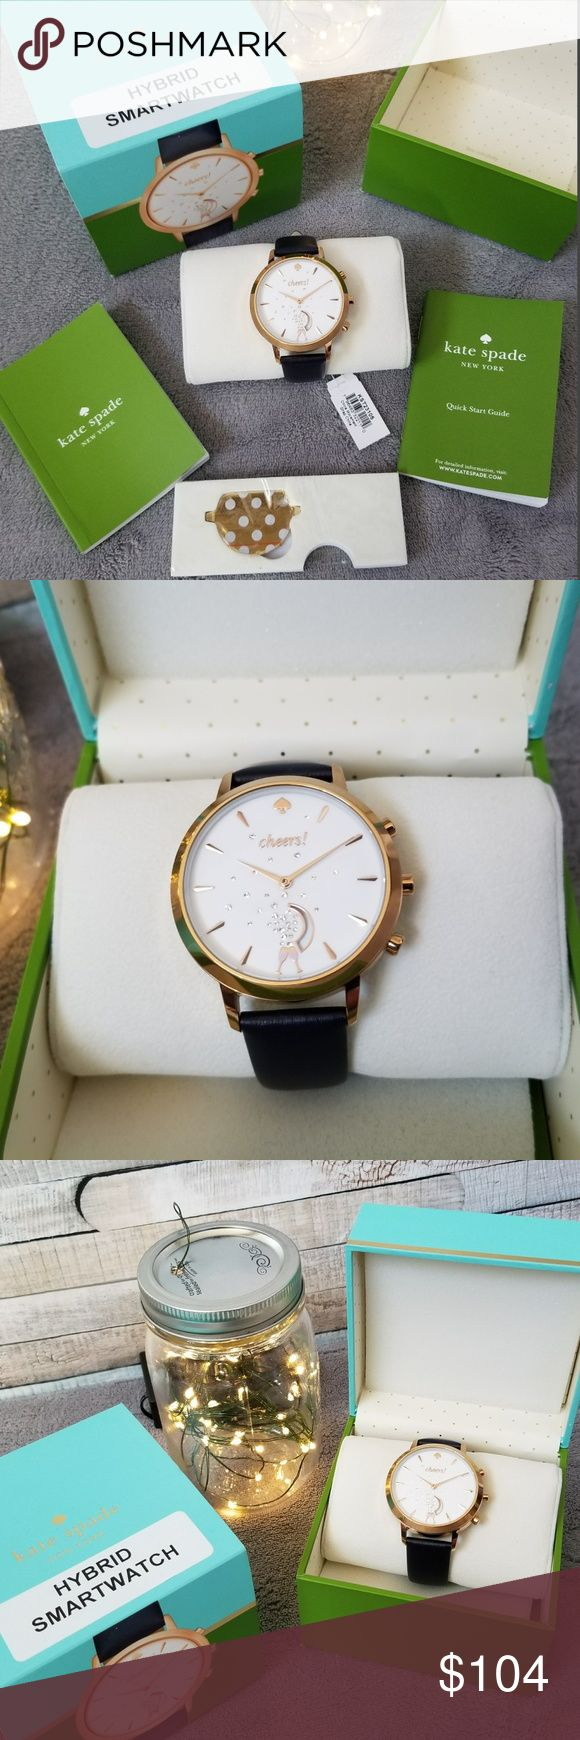 Kate Spade Hybrid Smartwatch NWT Gorgeous Kate Spade Hybrid Smartwatch with navy leather band - Brand new in box!! Compatible with android or Apple operating systems Tracks Sleep, Steps, and Personal Goals Create Notifications, Reminders, and set Alarms Control your favorite playlists and more! kate spade Accessories Watches